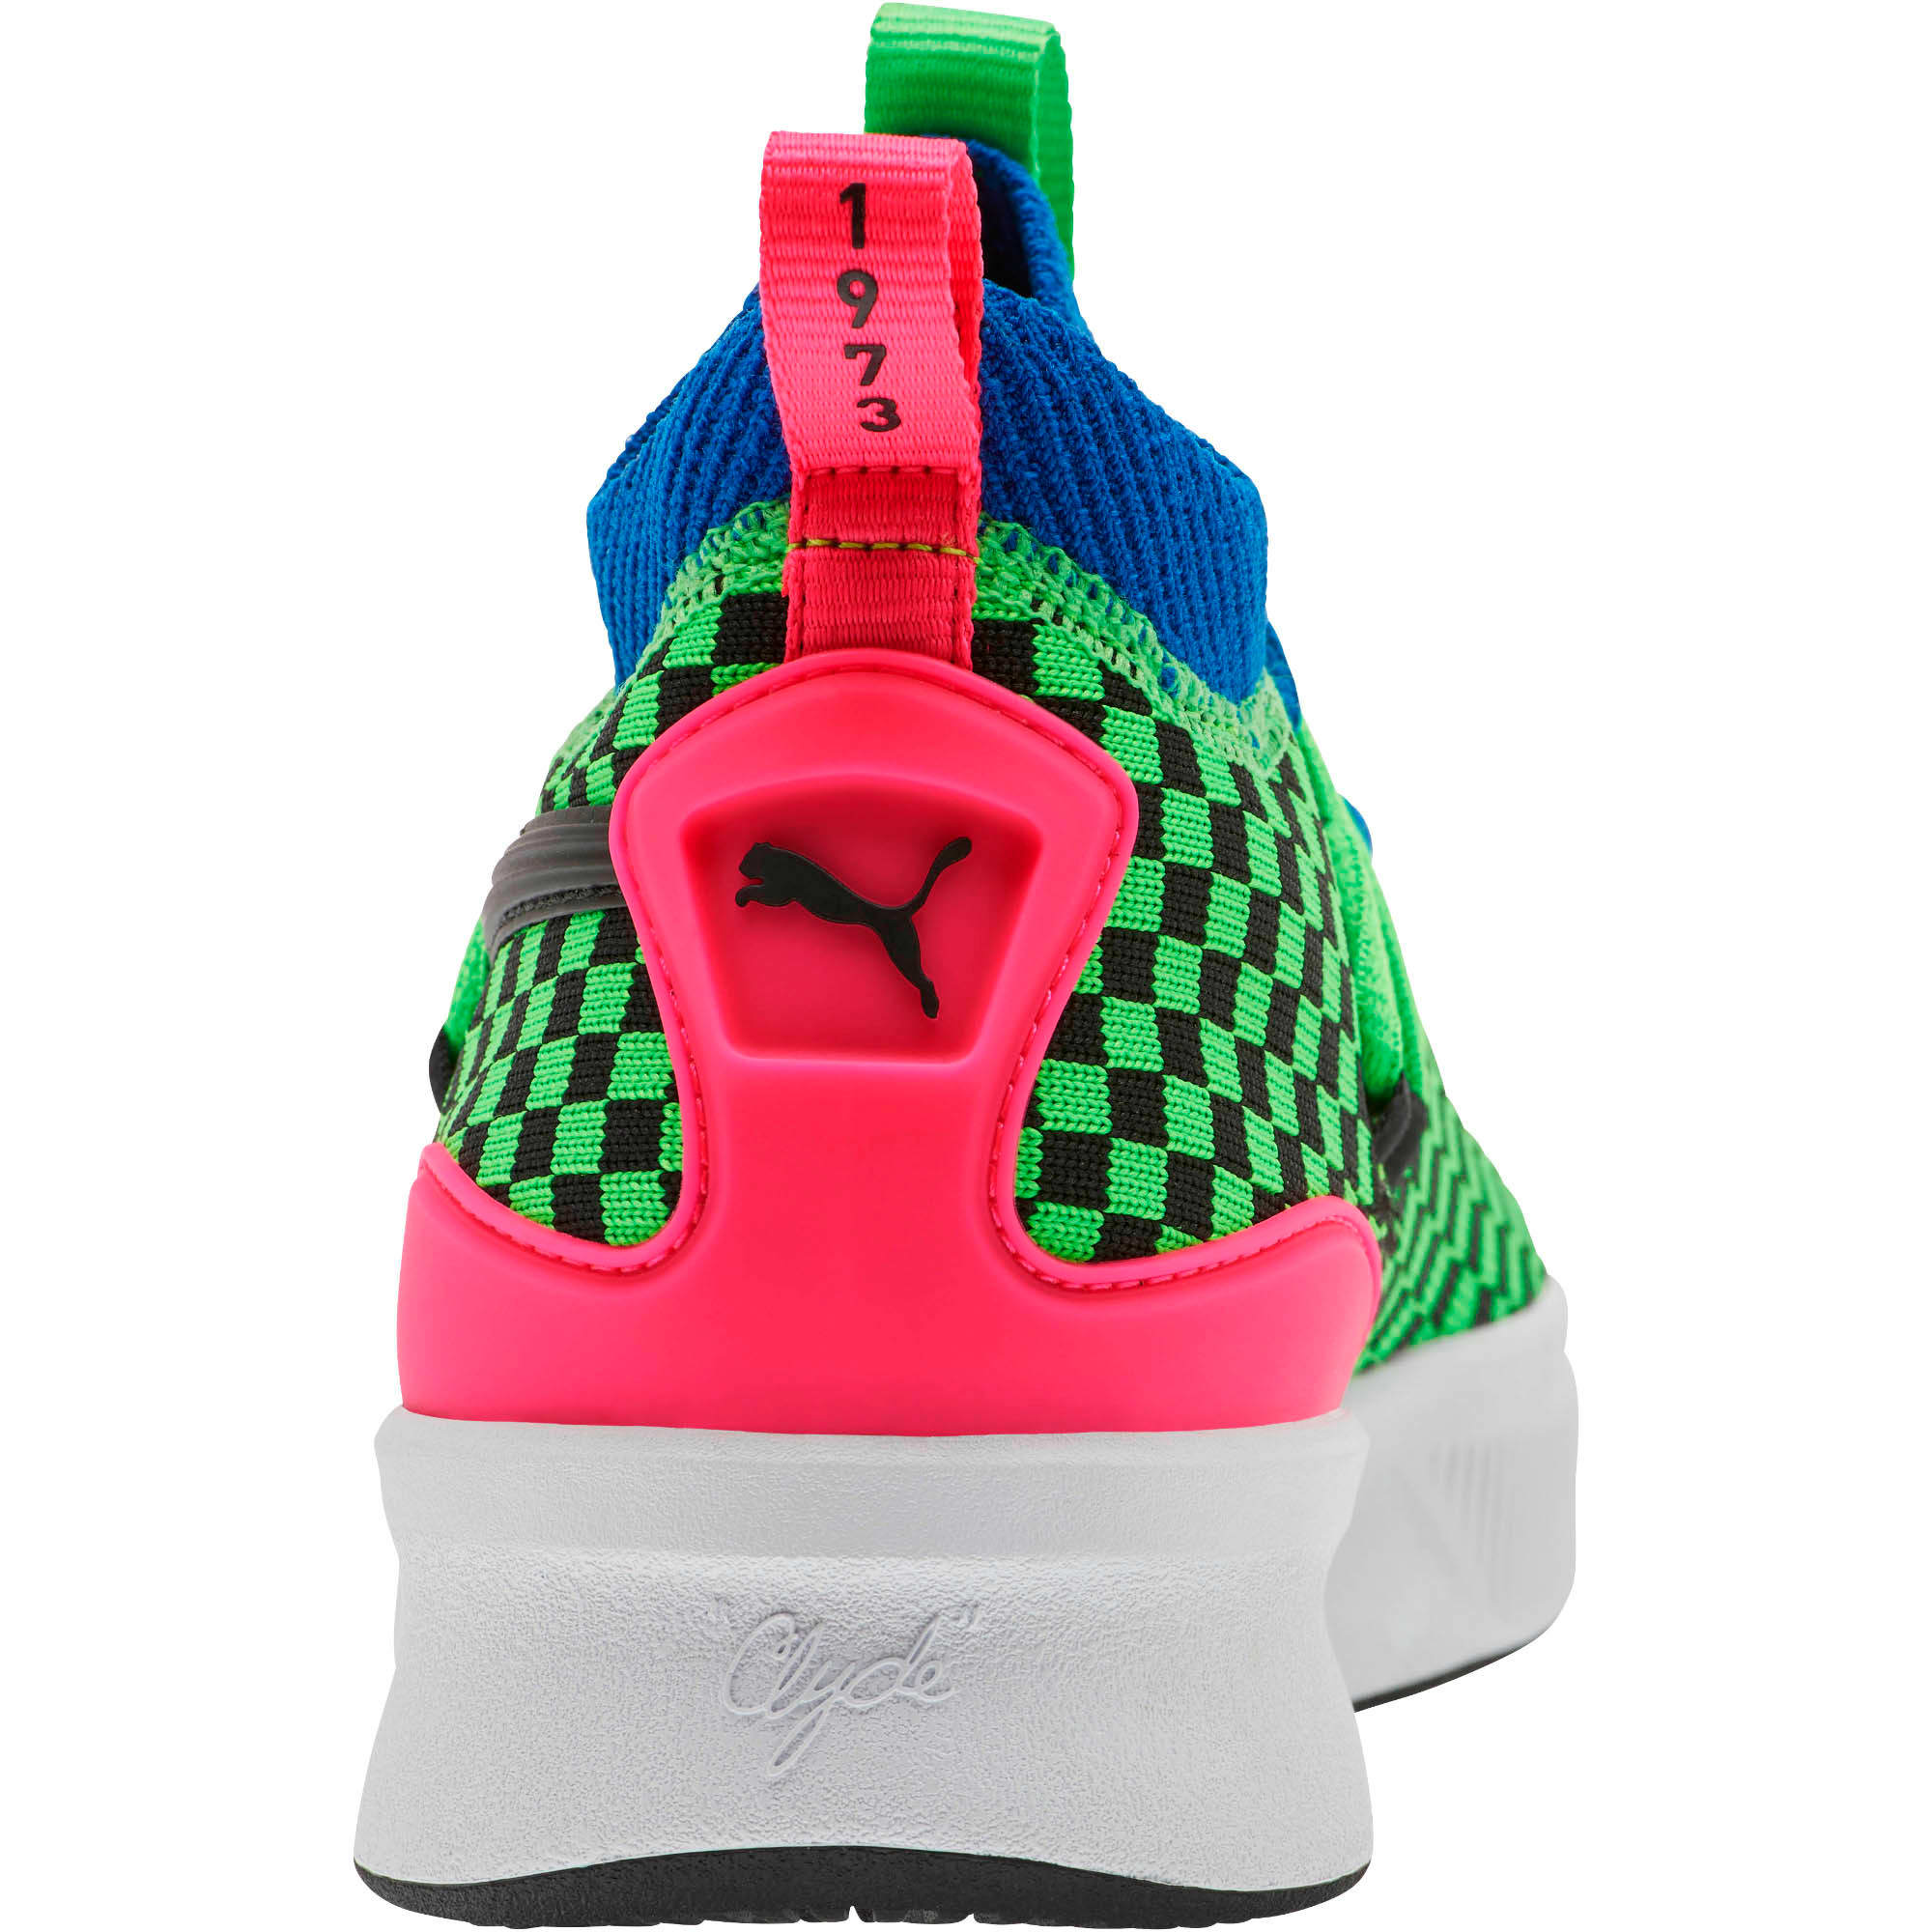 Thumbnail 3 of Clyde Court Summertime Basketball Shoes JR, 802 C Fluro Green PES, medium